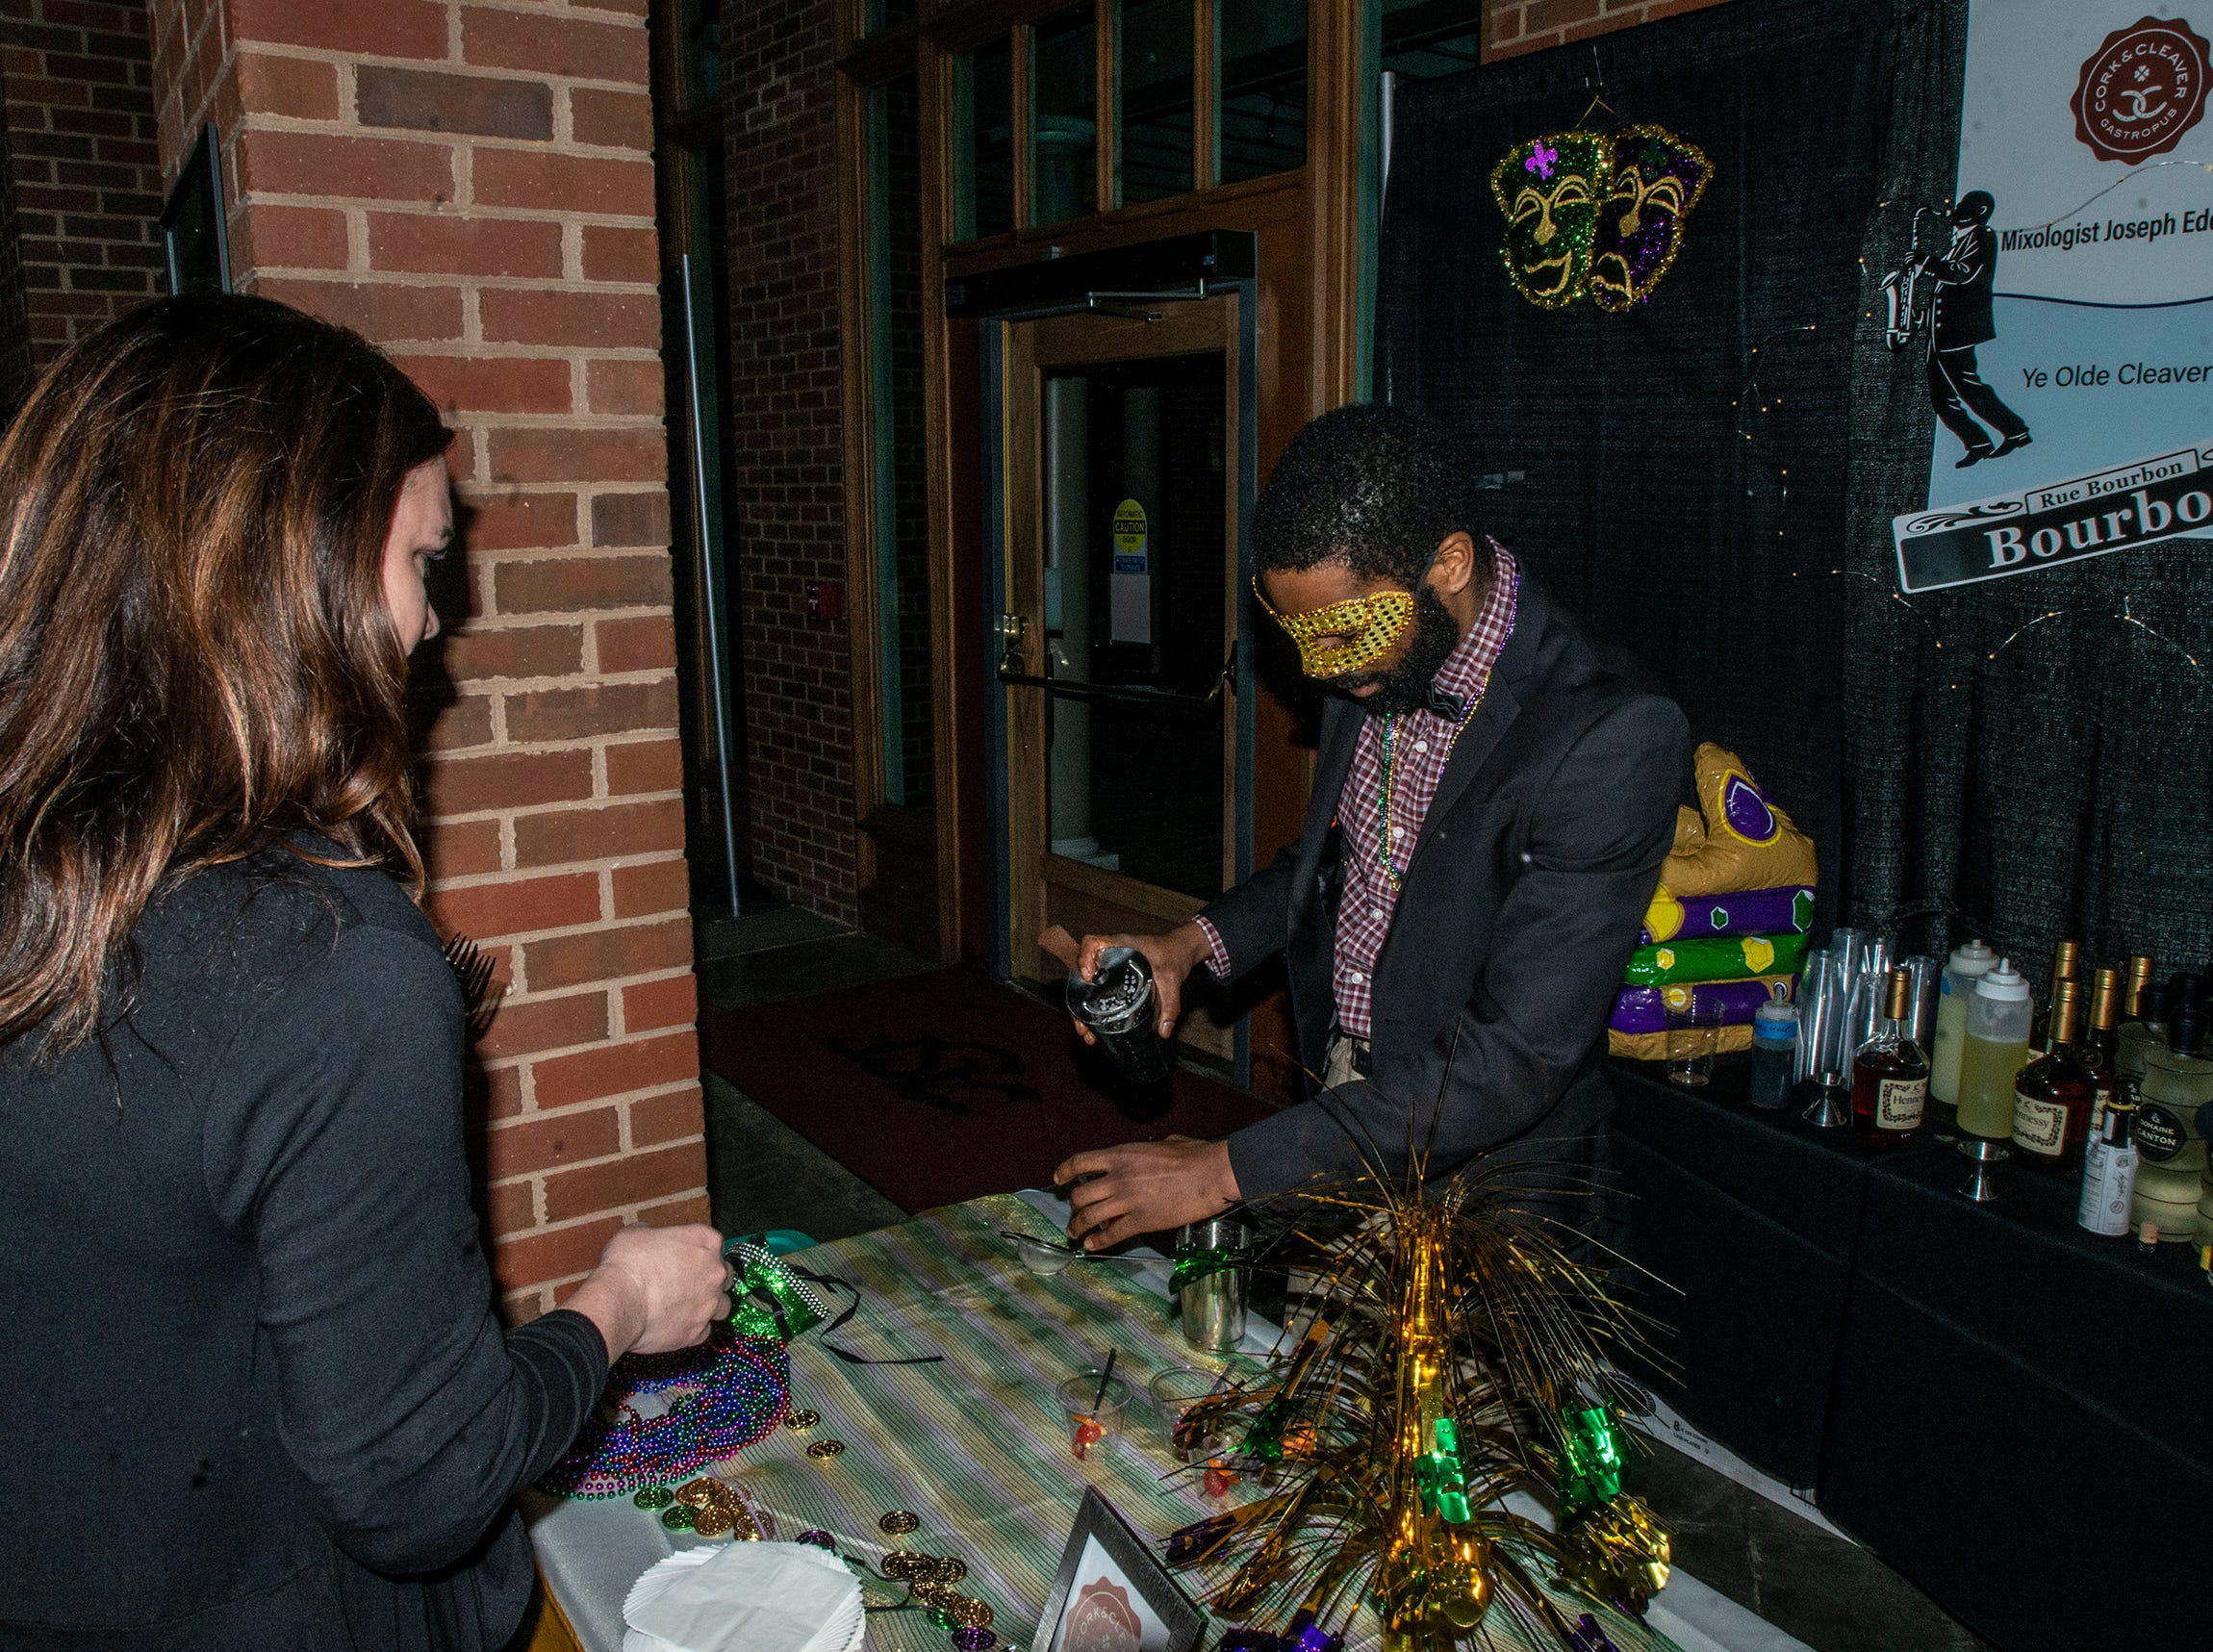 The Cork and Cleaver's masked mixologist serves Ye Olde Cleaver drinks. The annual Feast of Flavours was held Monday, Jan. 28, 2019, at Alabama Shakespeare Festival in Montgomery.